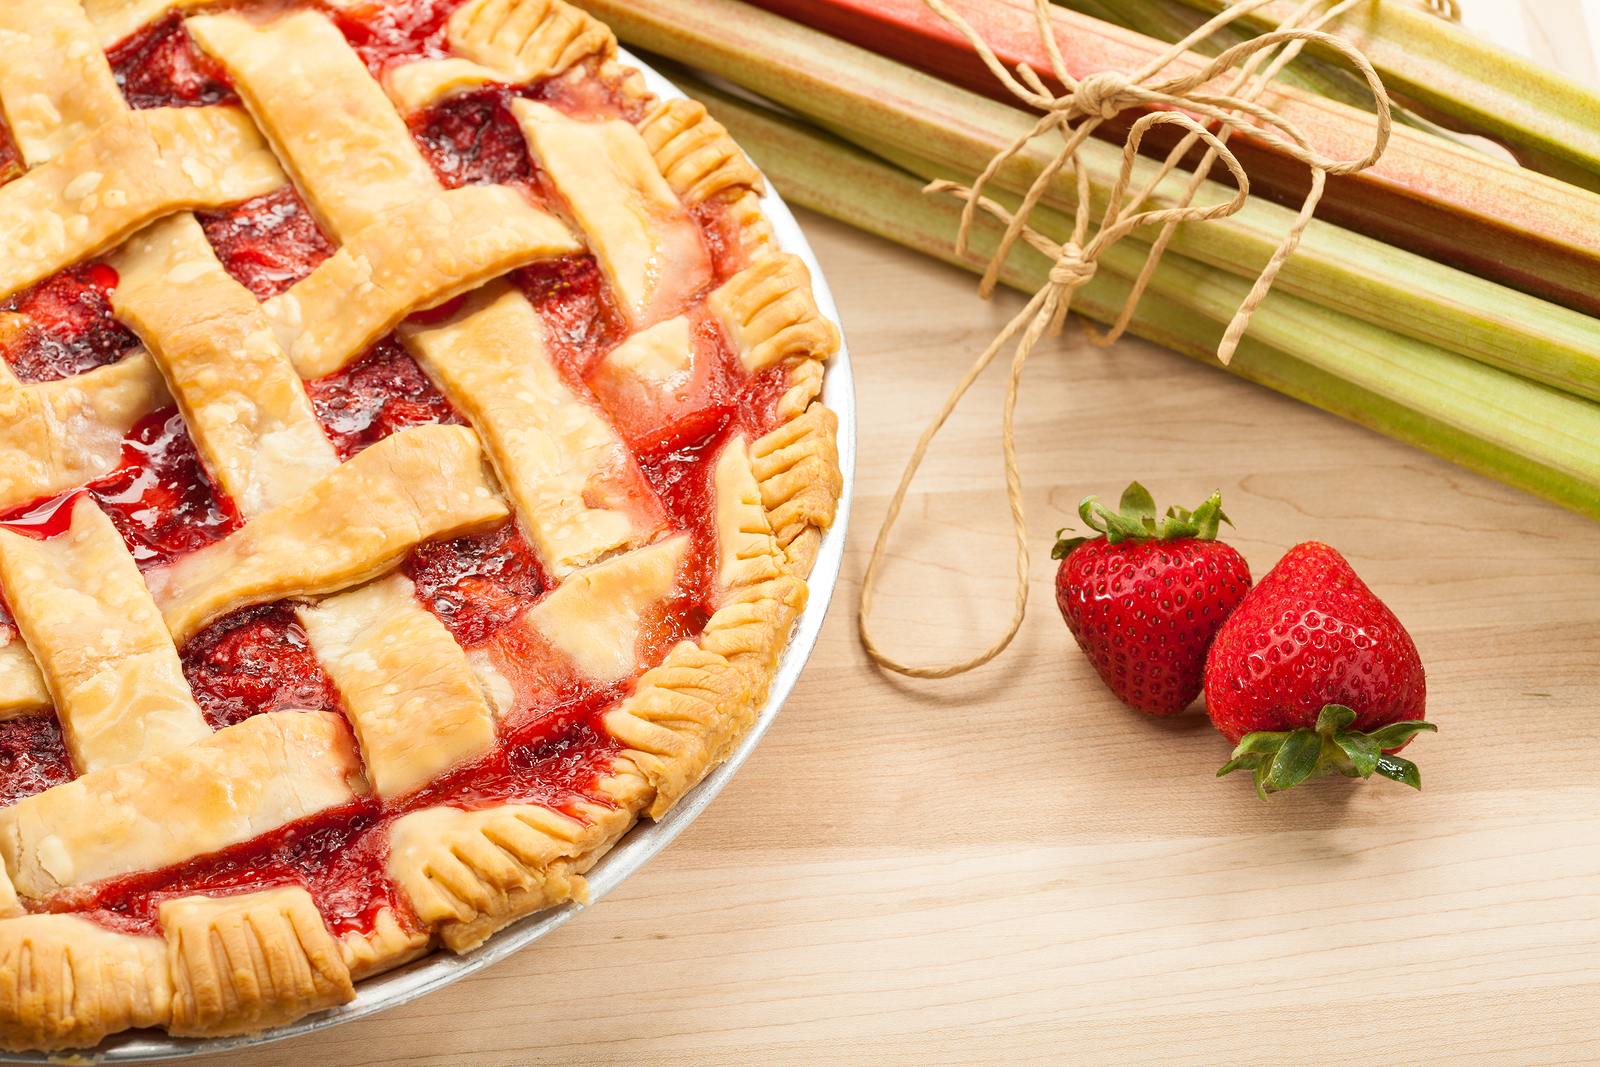 ... : This particular strawberry rhubarb pie was NOT made by Deb